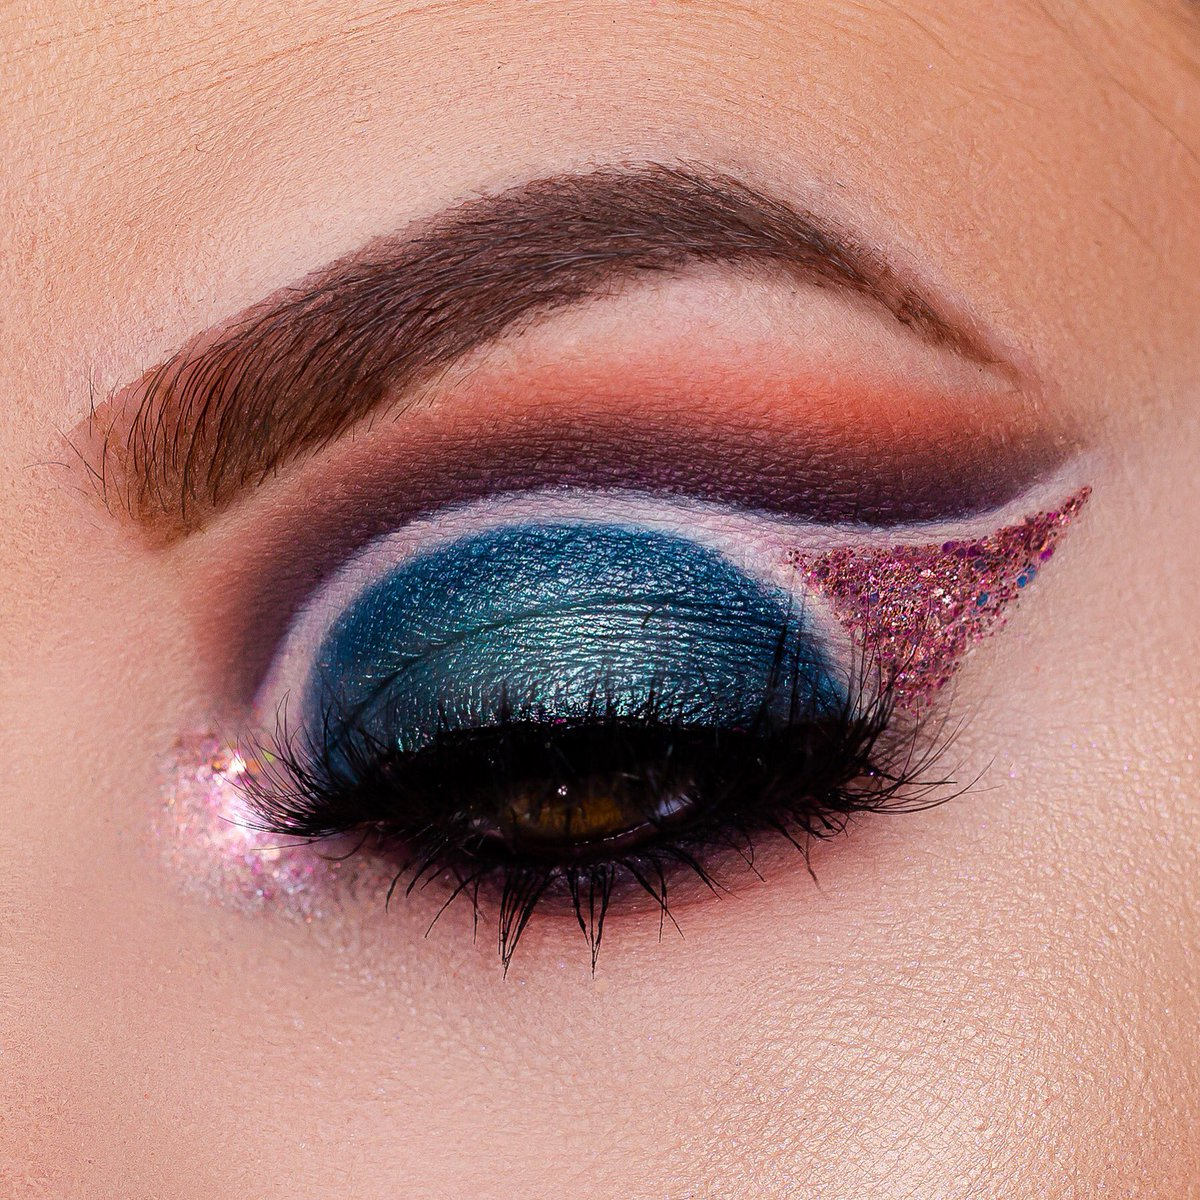 Tried out a different Shape today! And an unexpected color combination.  @UrbanDecay Born to Run Palette @BenefitBeauty Precisely My Brow Pencil  @litcosmetics Fall in Love Glitter Mix @LashKitty New Love Lashes http://Instagram.com/kaitkmua for more details